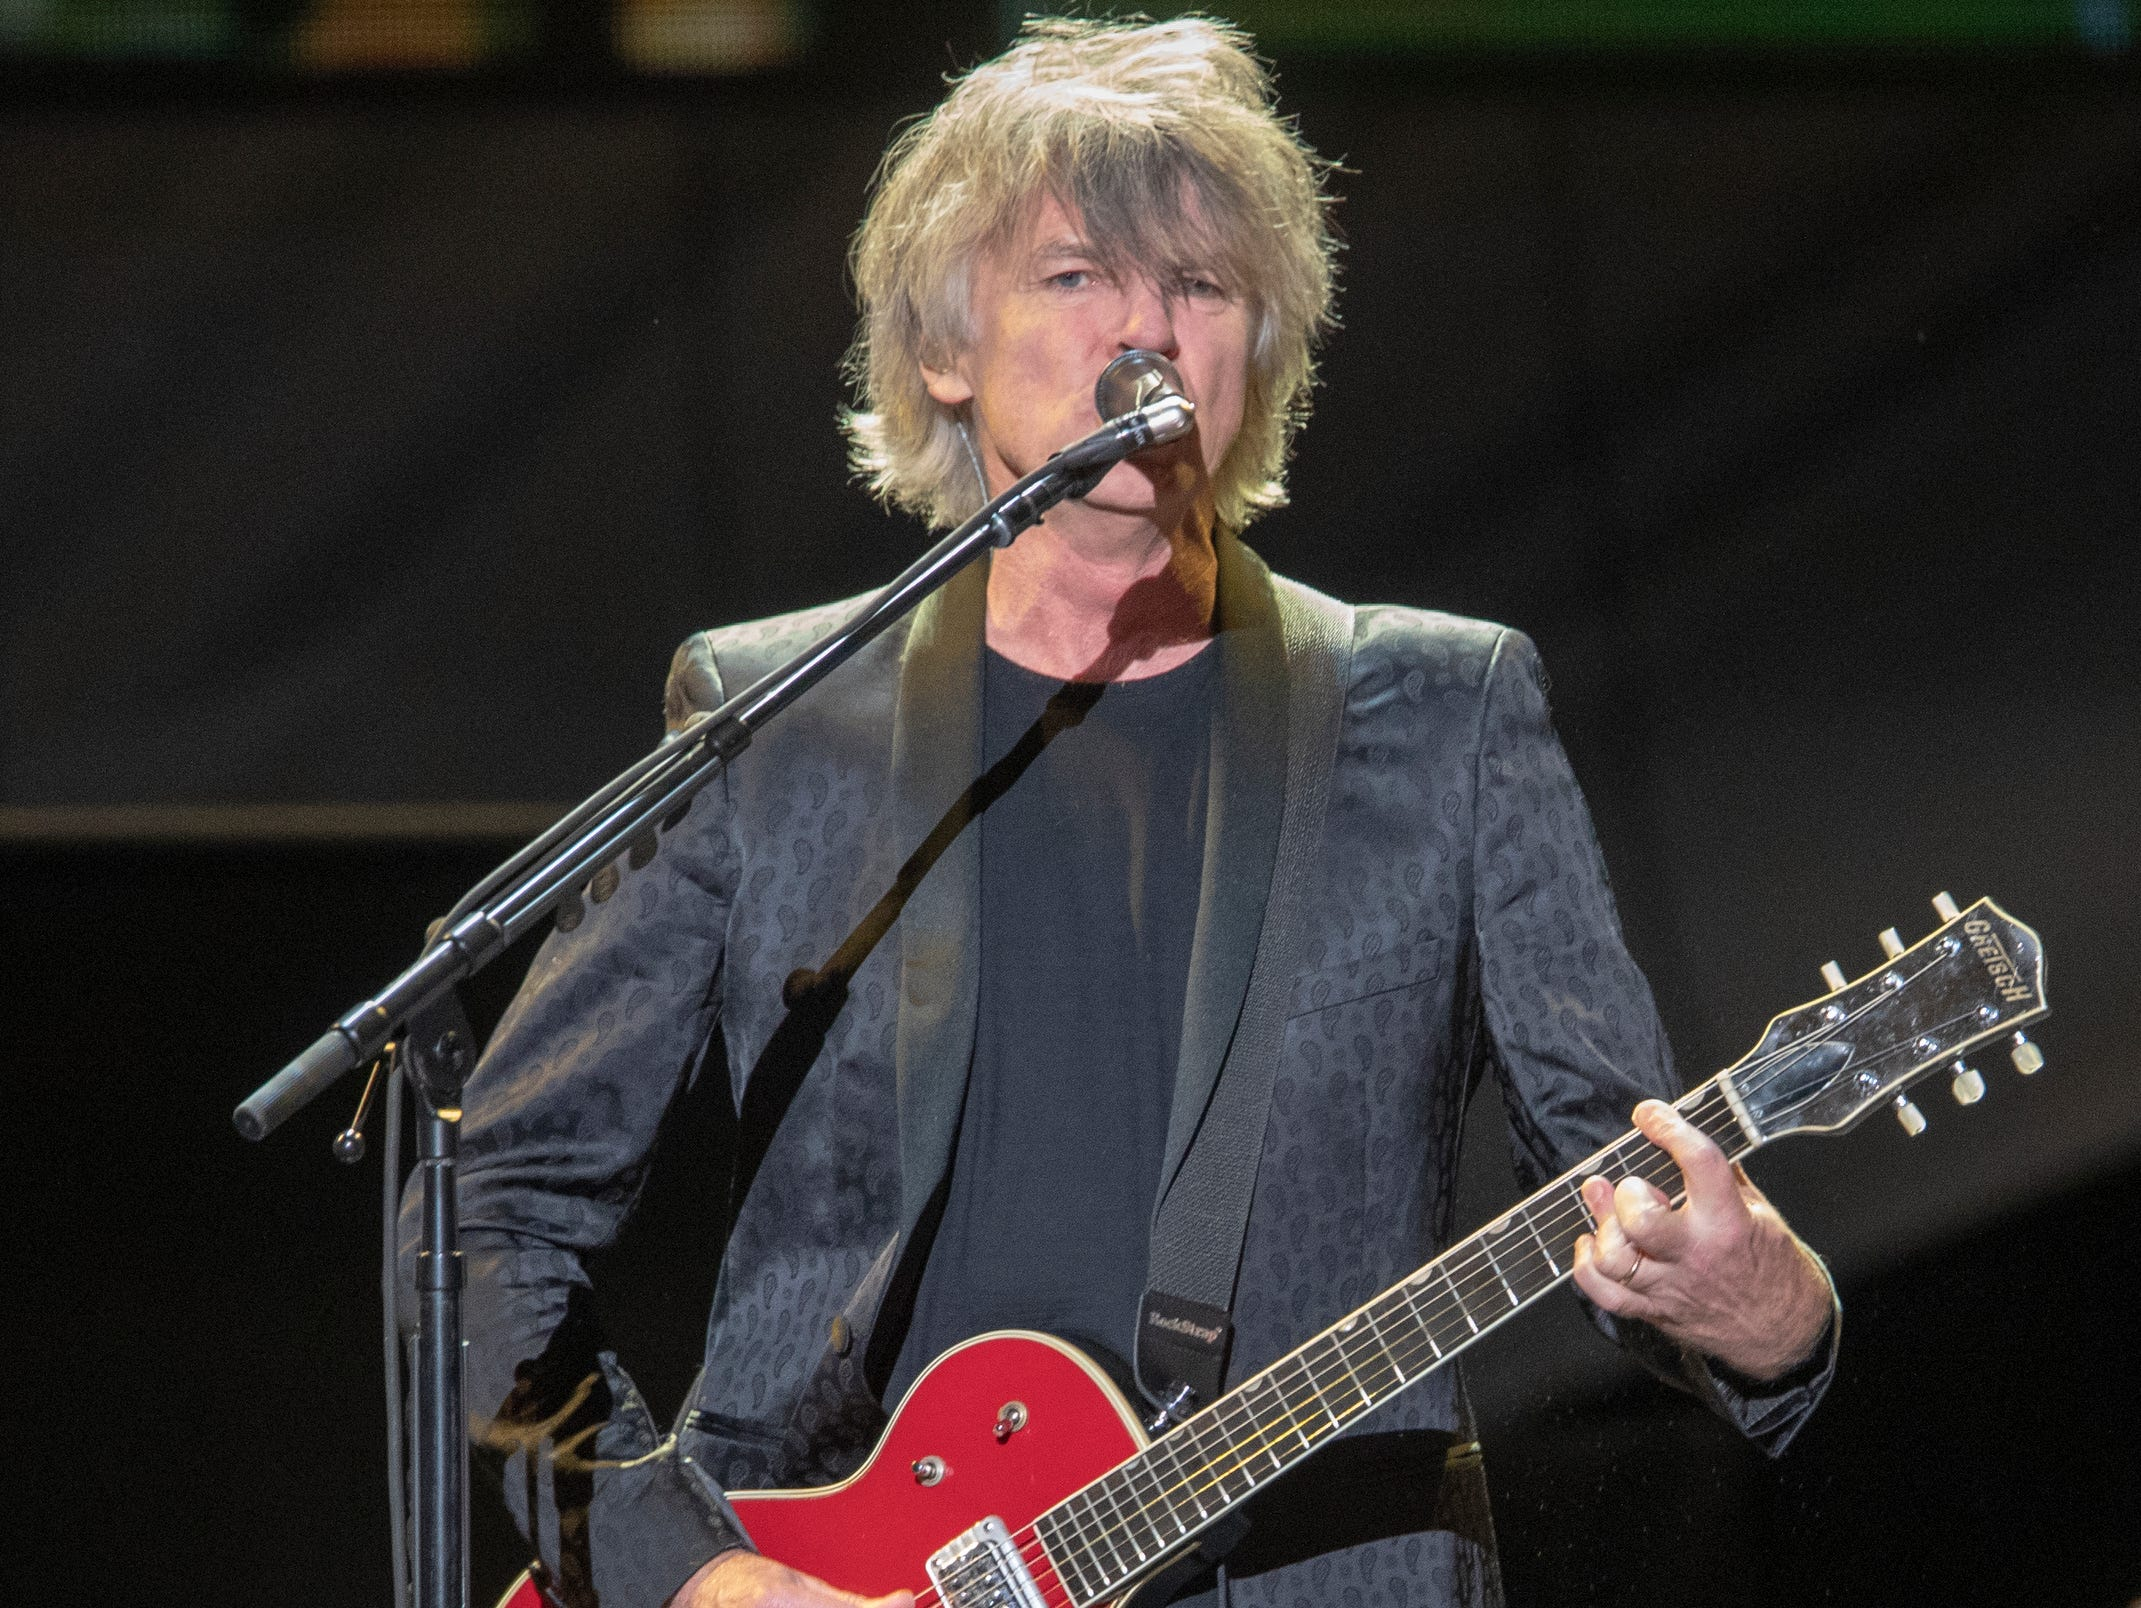 Neil Finn, during a performance by Fleetwood Mac at Bankers Life Fieldhouse, Indianapolis, Tuesday, Oct. 16, 2018. The band is playing on their current North American tour.